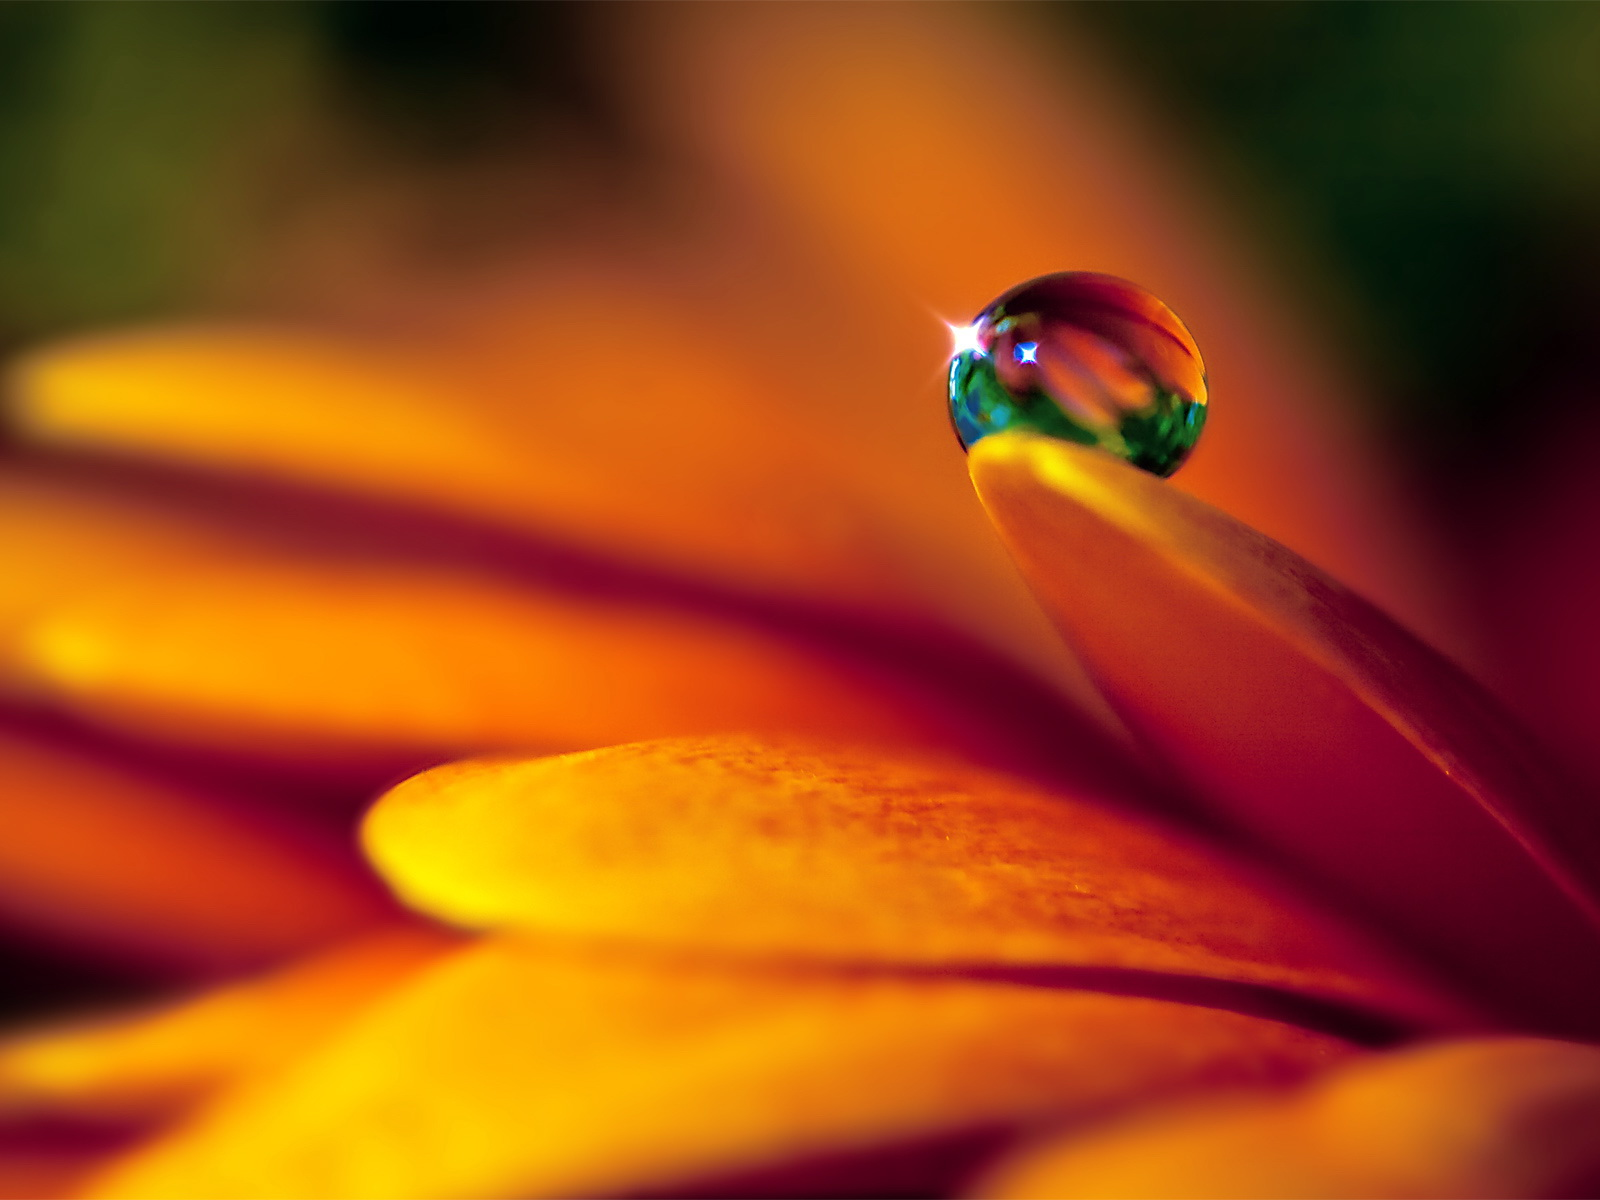 Flowers Droplets Wallpapers HD Pictures One HD Wallpaper 1600x1200